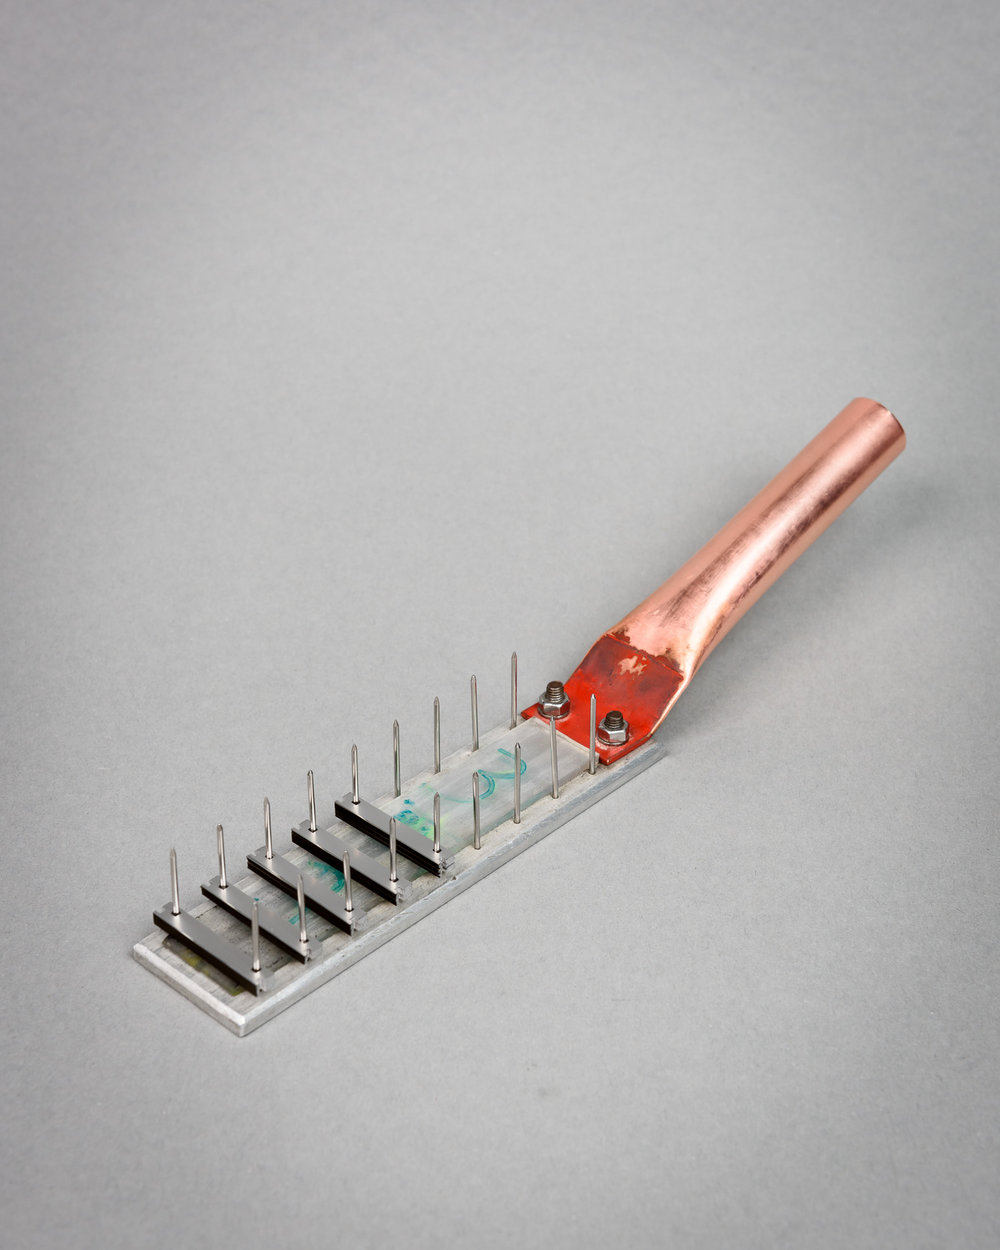 Tool for sorting razor blades at Harry's razor factory, Germany